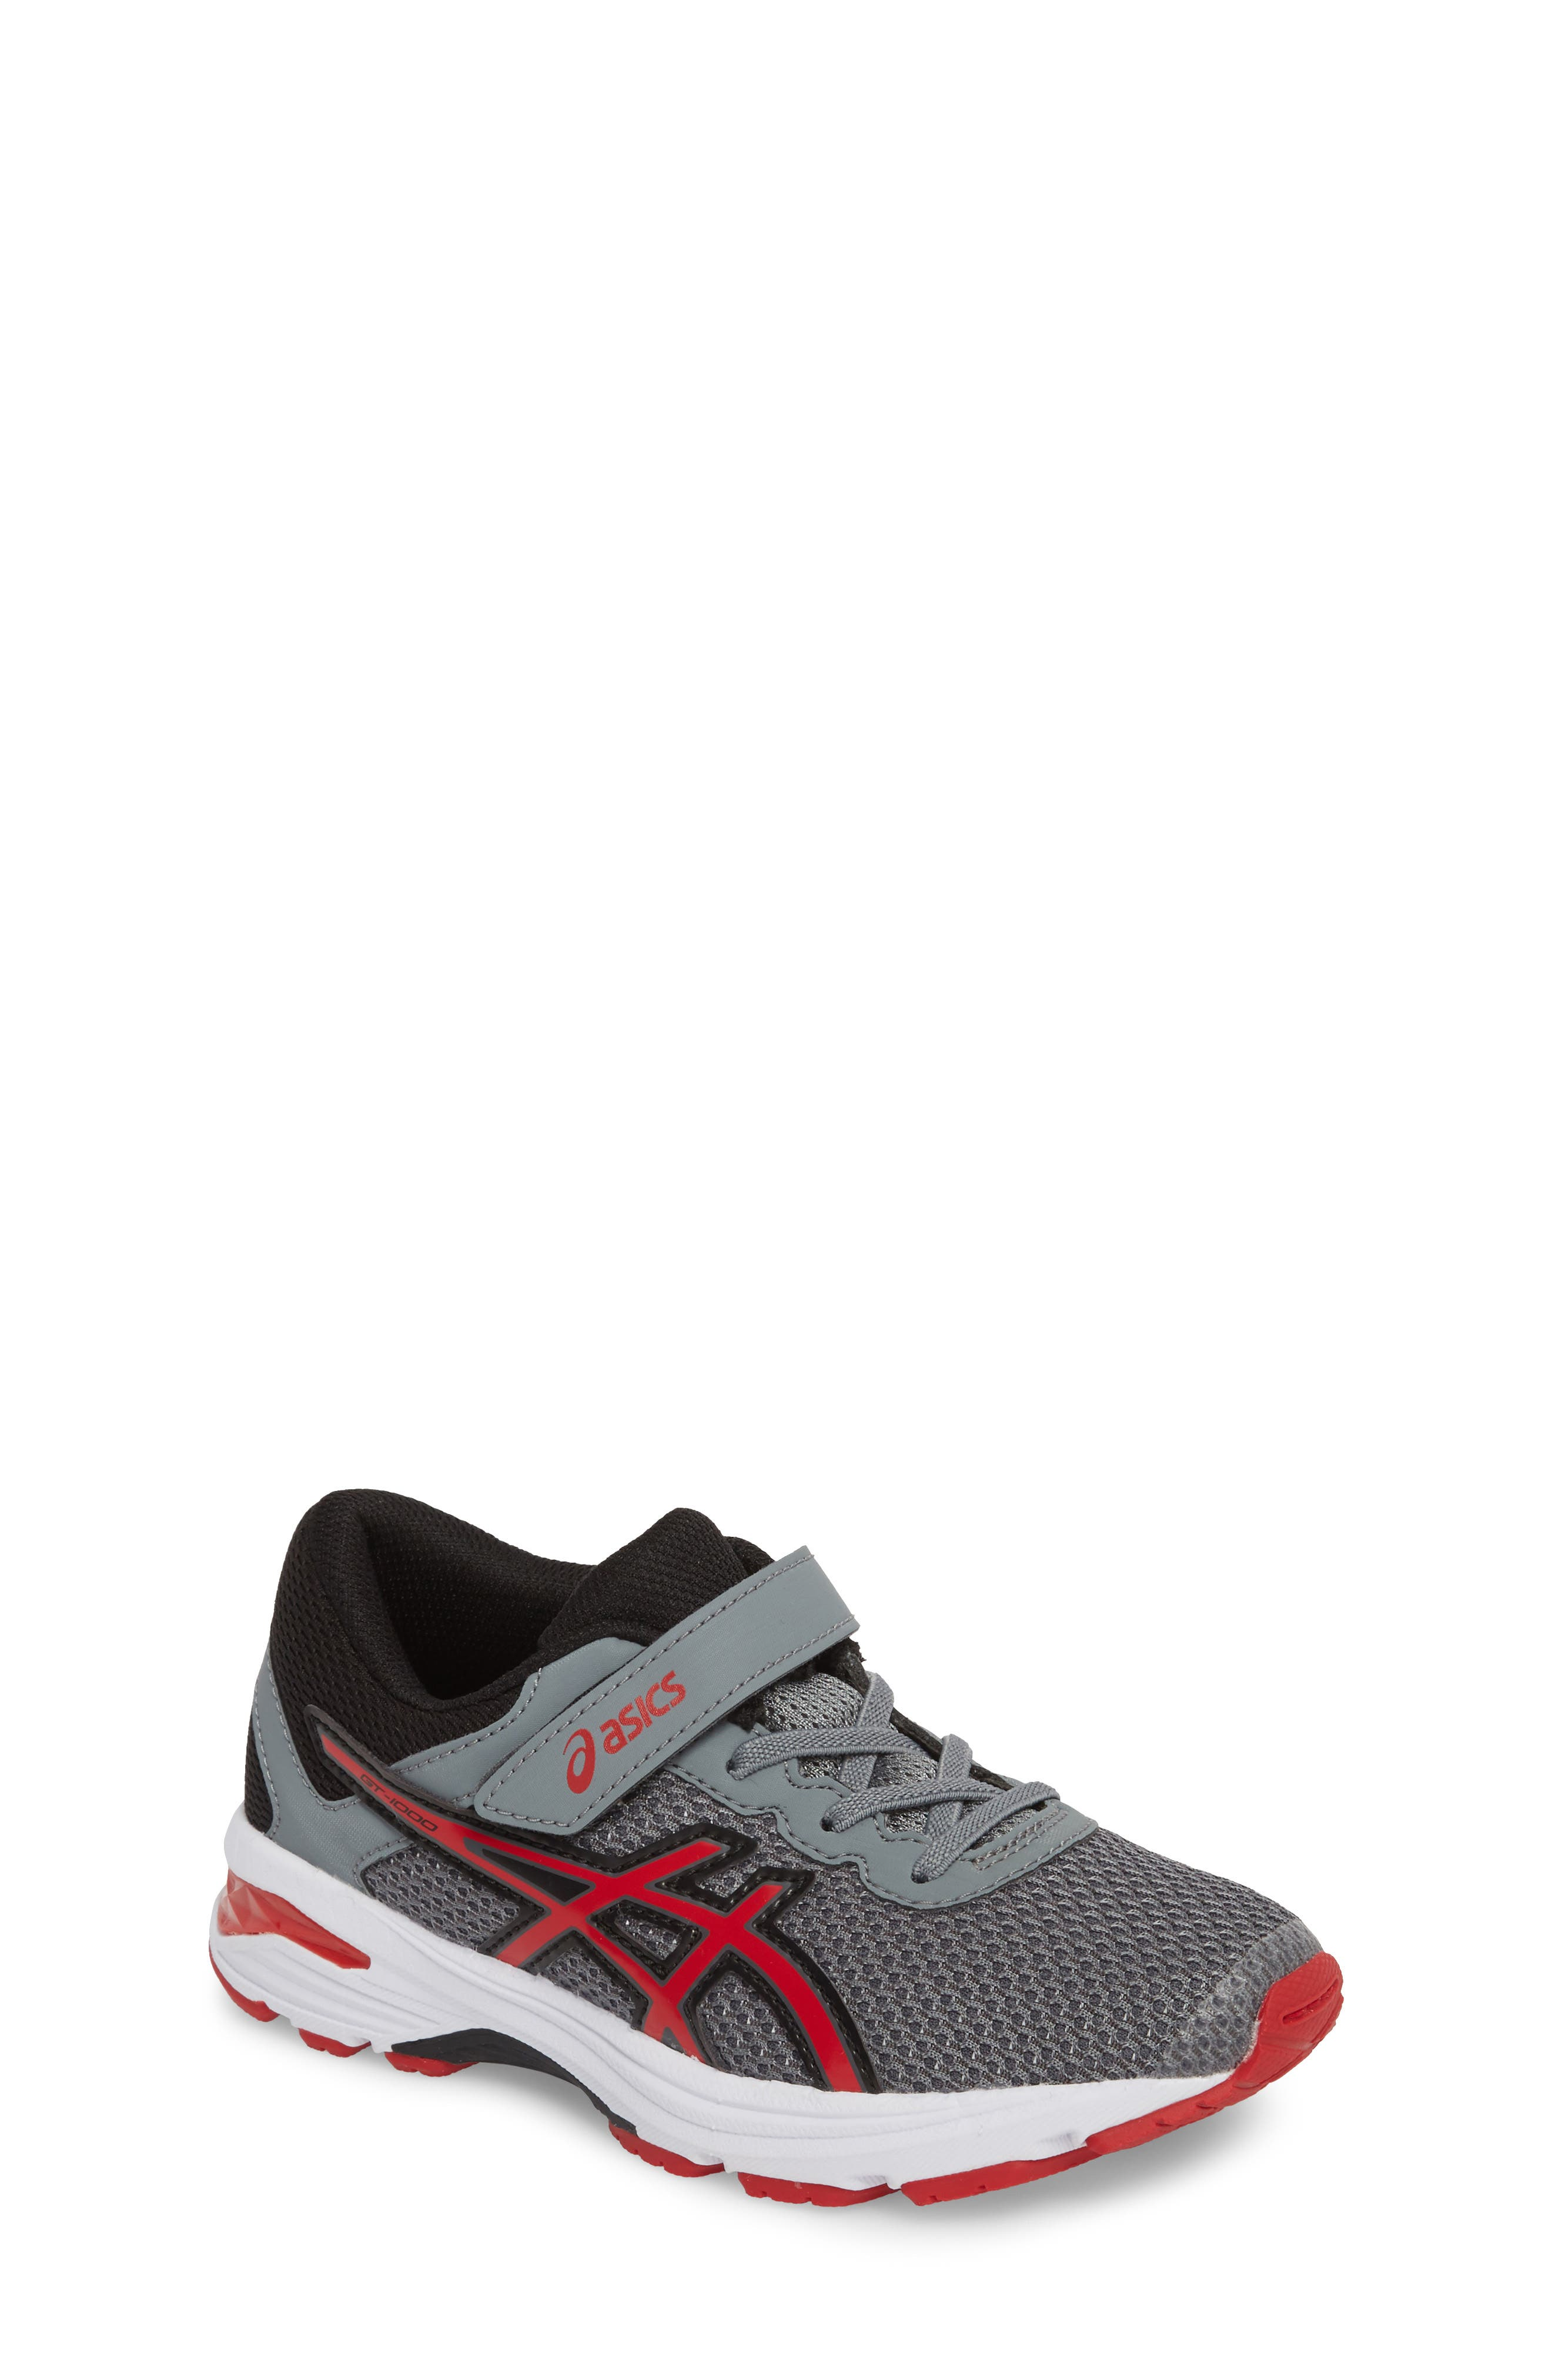 Asics GT-1000<sup>™</sup> 6 PS Sneaker,                         Main,                         color, Stone Grey/ Classic Red/ Black